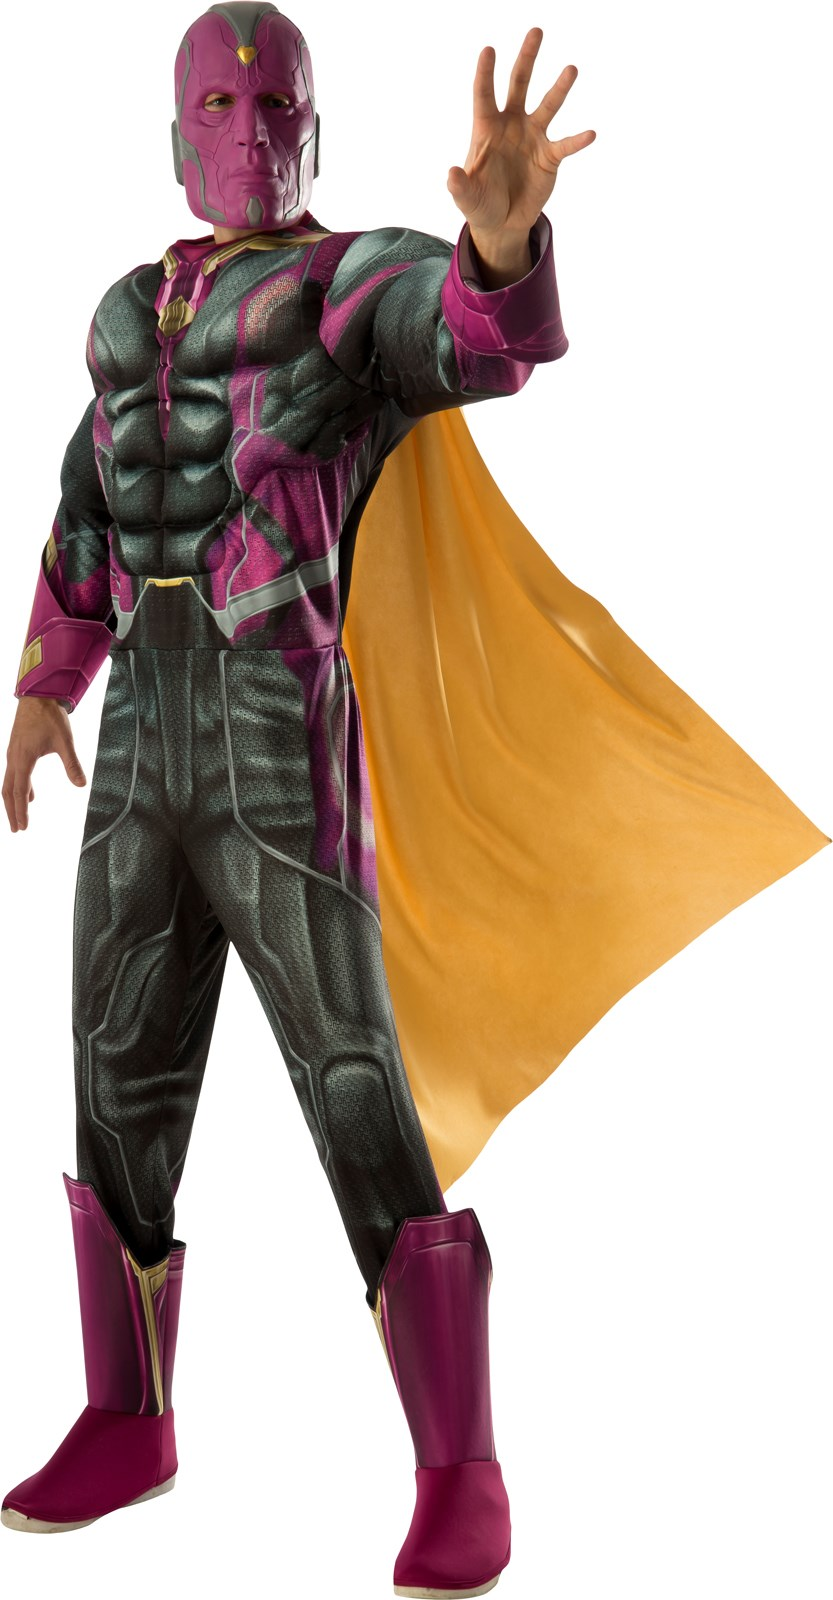 Avengers 2 - Age of Ultron: Deluxe Vision Adult Costume X-Large (42-46)